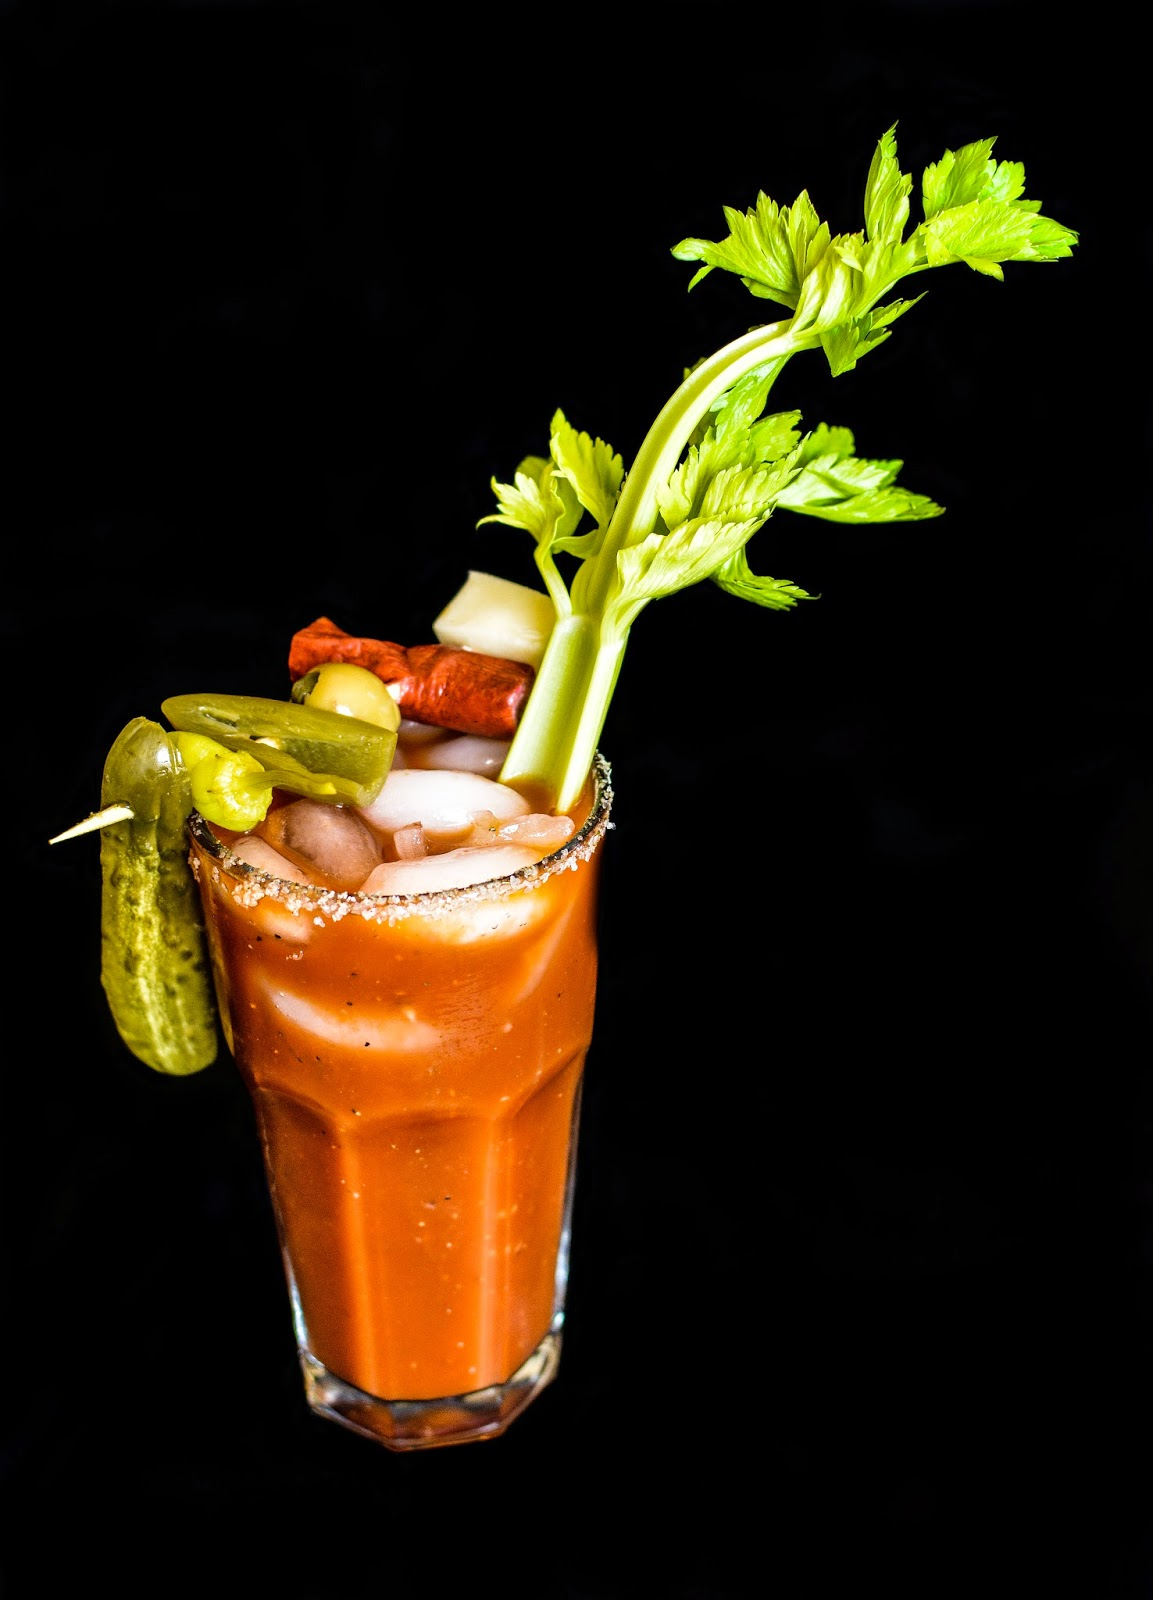 All Food Considered: Bloody Marys